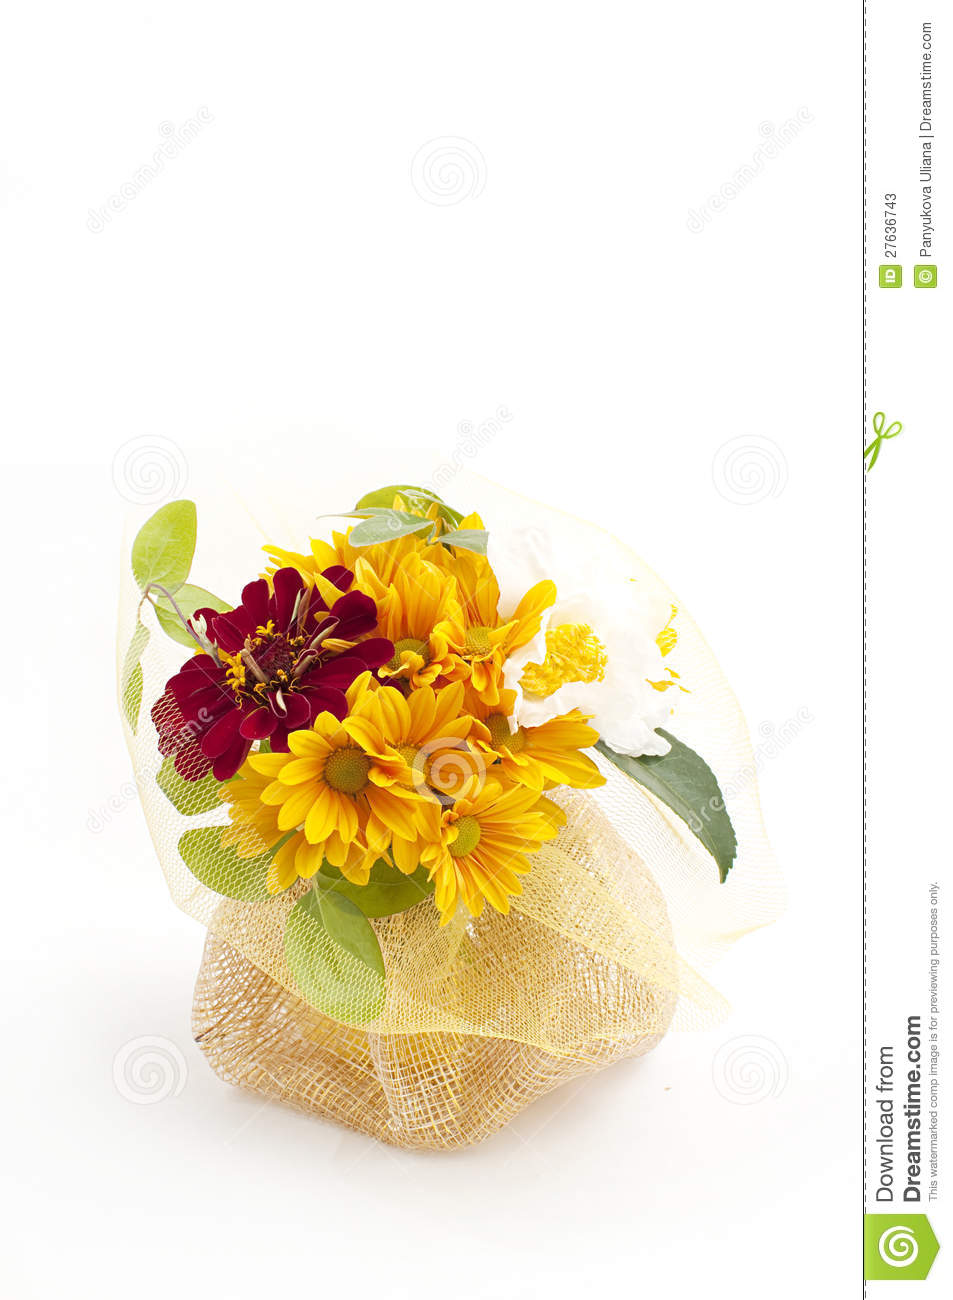 Bouquet Of Yellow Chrysanthemum Stock Photos - Image: 27636743